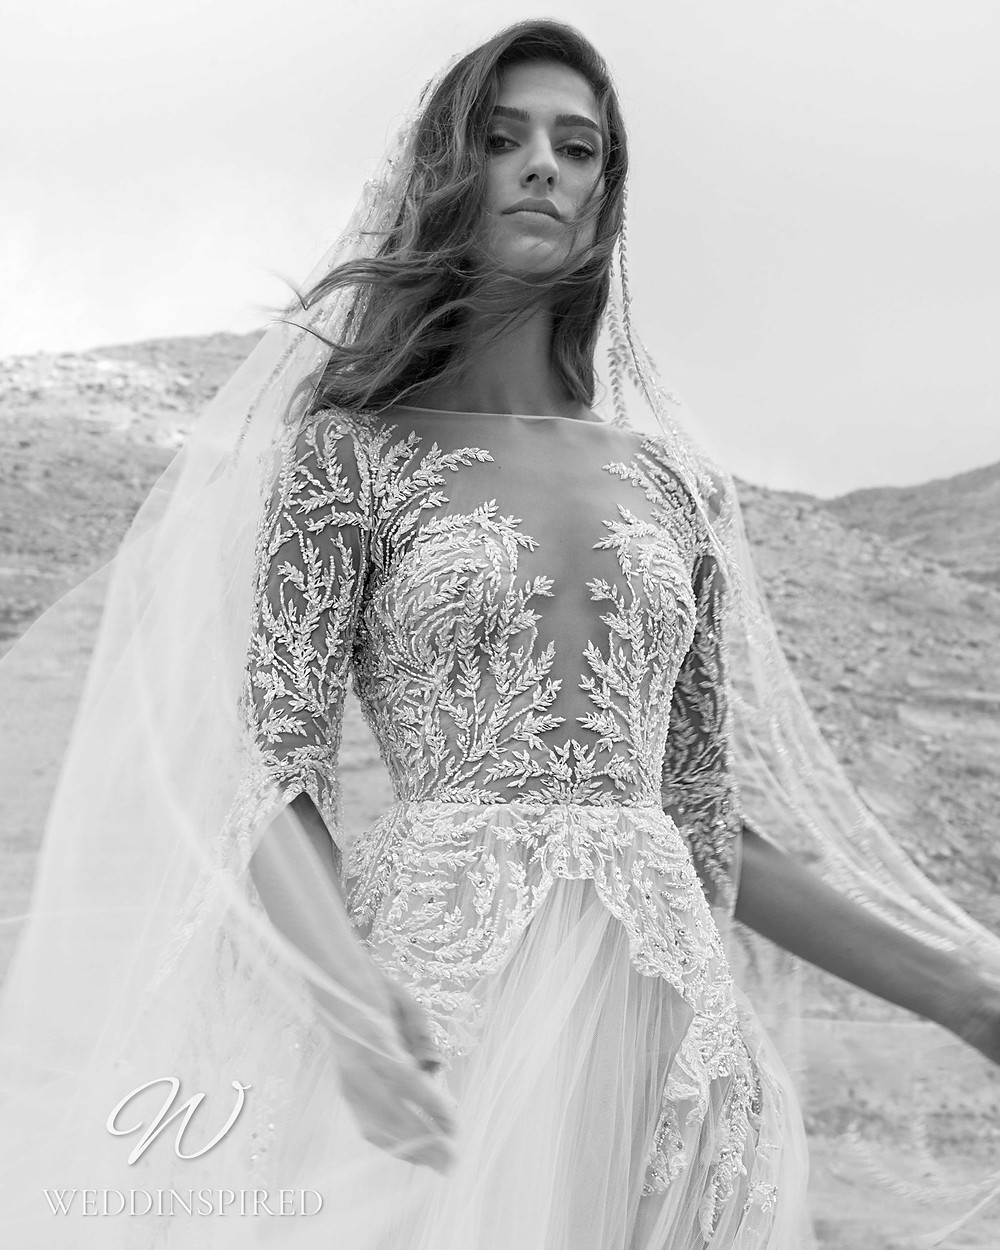 A Zuhair Murad Fall 2021 lace and tulle A-line wedding dress with long sleeves and an illusion neckline